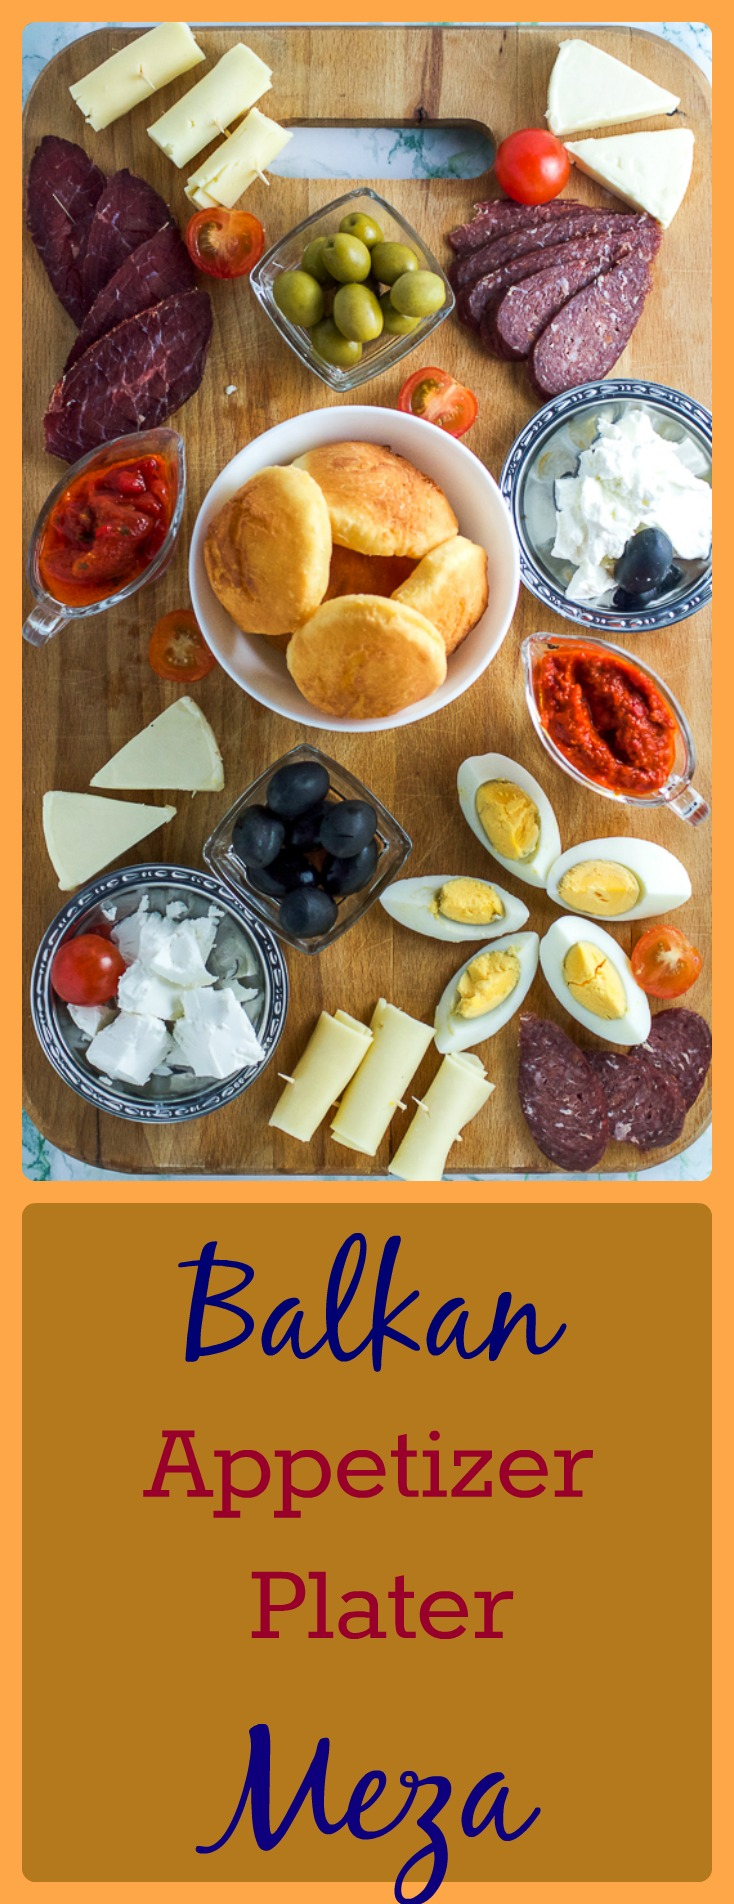 An easy way to put together an appetizer platter Balkan style. Also known as meza in the area, this type of snack platter is typical to what you may encounter on your visit to someone's home.